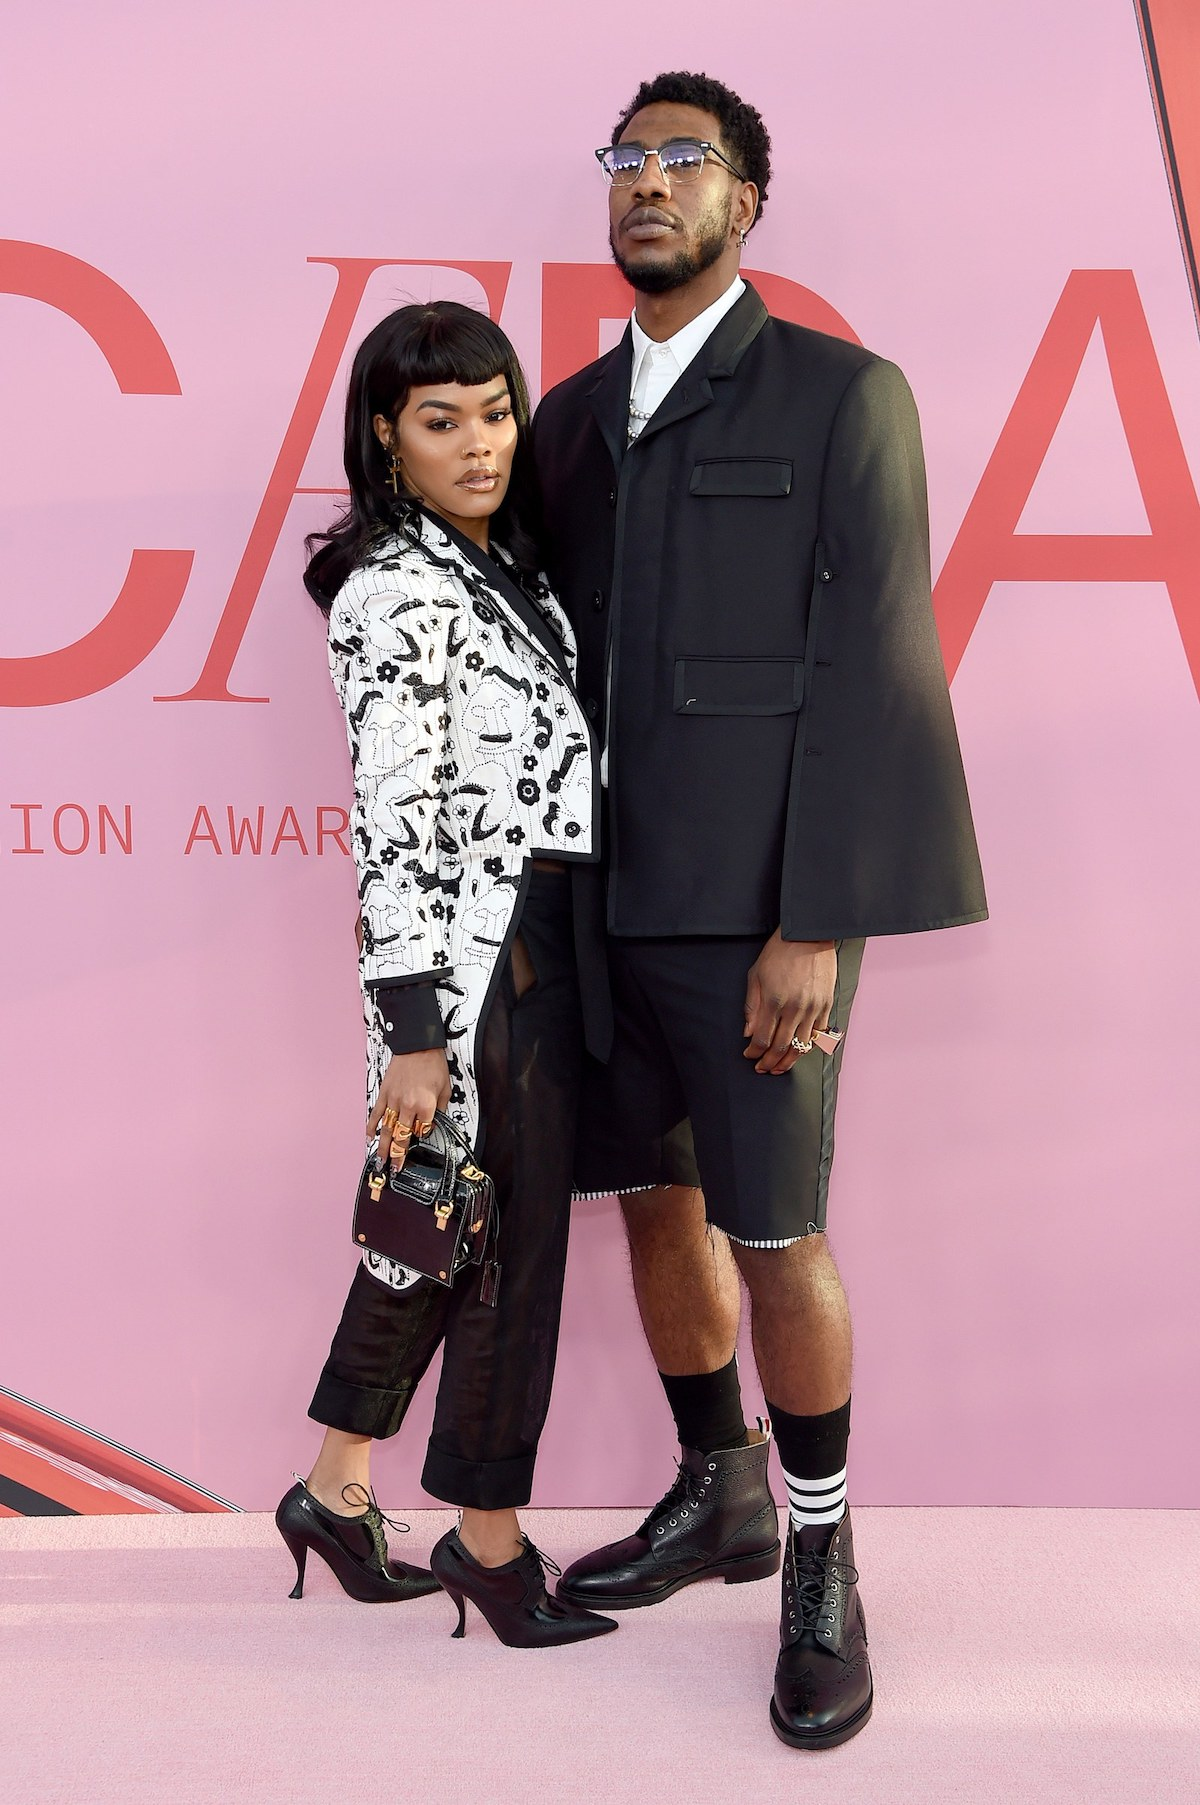 SPOTTED: Teyana Taylor Attends CFDA Awards in Thom Browne